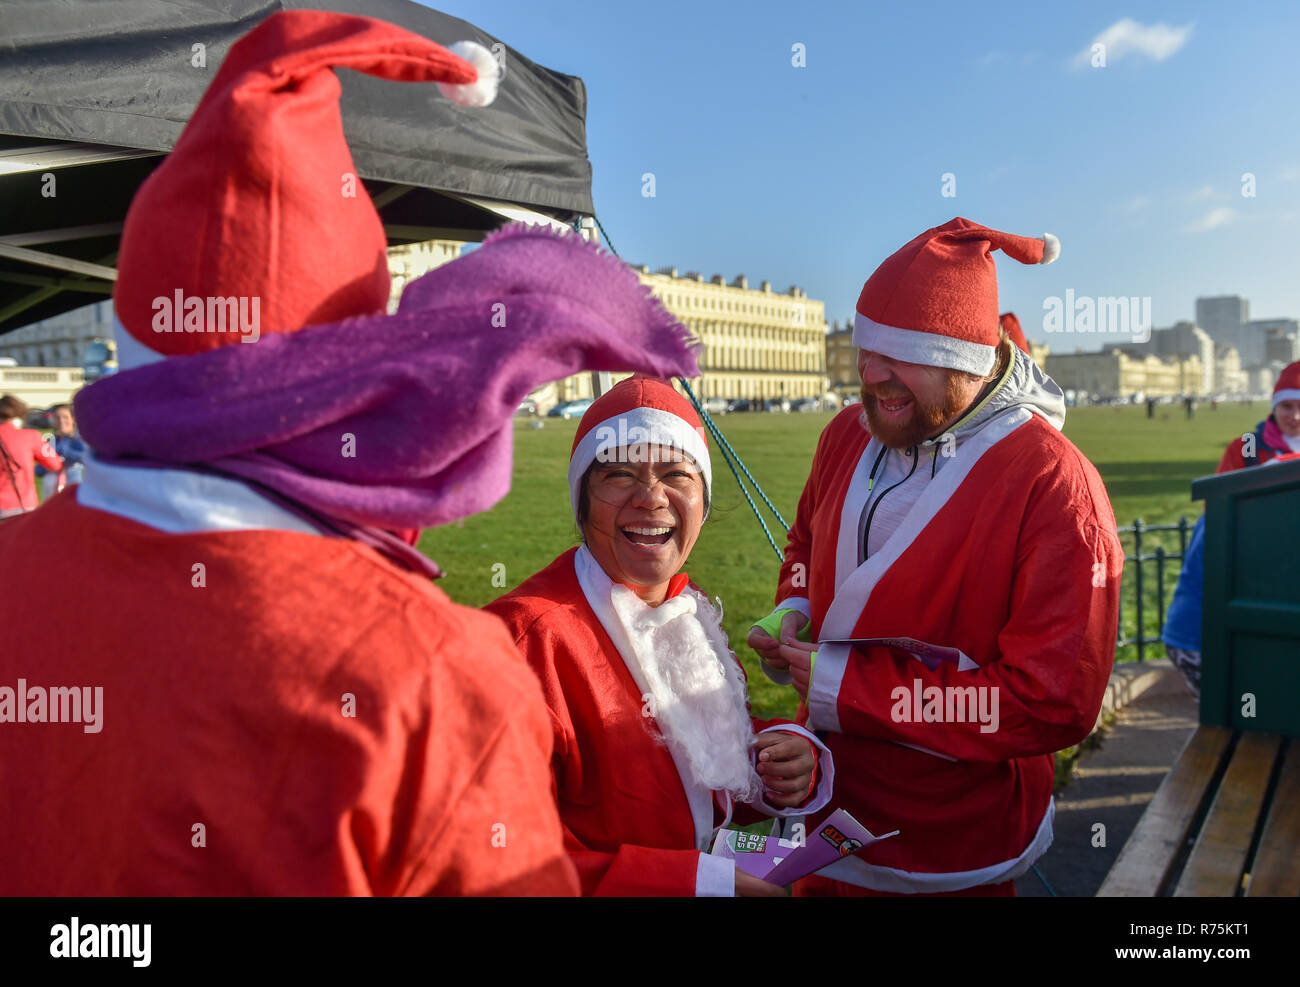 Brighton, Sussex, UK. 08th December 2018. Hundreds of Santas take part in the annual Brighton Santa Dash in windy weather along the seafront at Hove raising money for the local Rockinghorse charity . Rockinghorse is a Brighton-based charity that has been supporting children in Sussex for over 50 years. Credit: Simon Dack/Alamy Live News - Stock Image